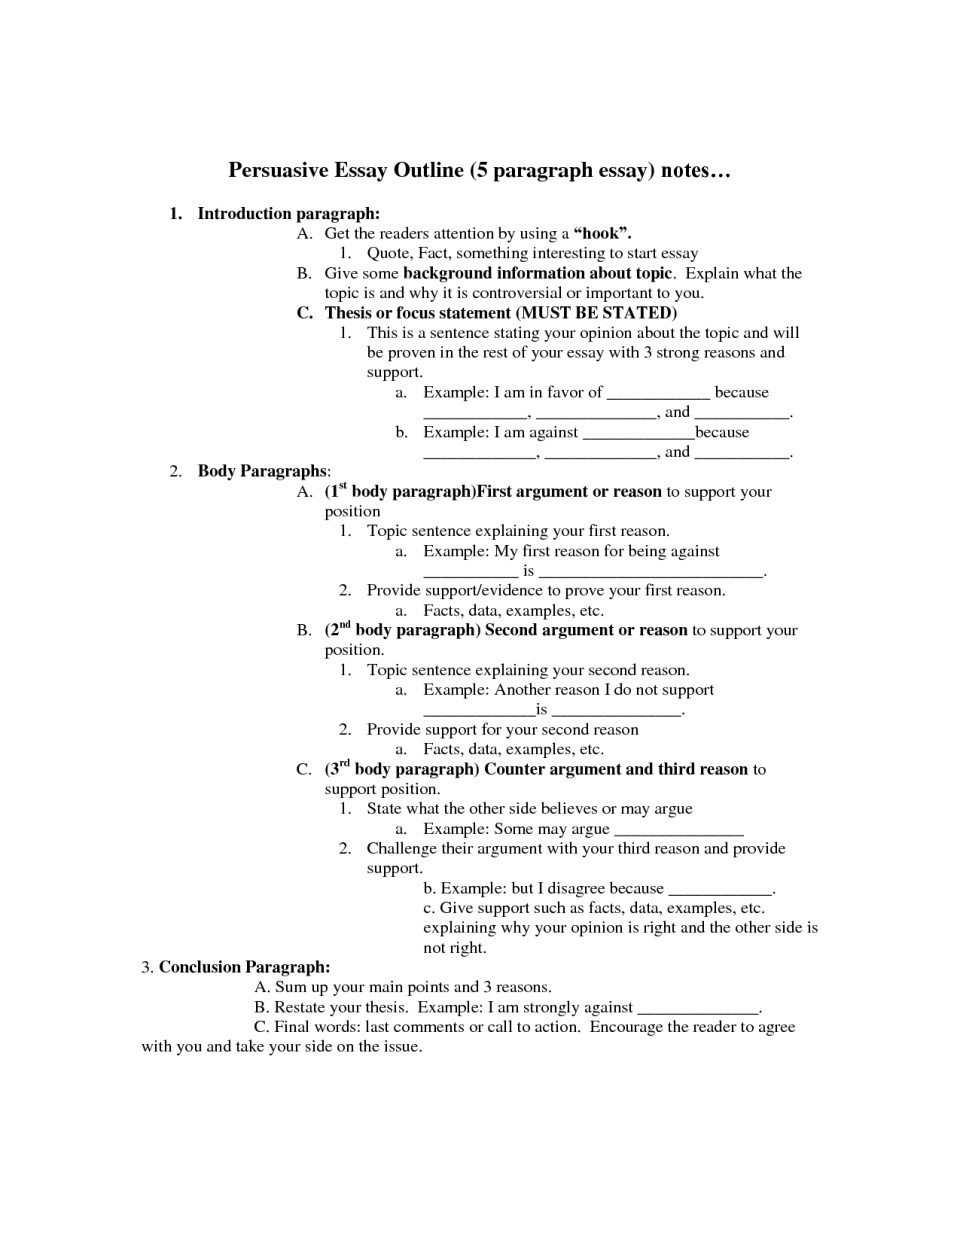 006 Persuasive Essay Outline Unbelievable Worksheet Paper Examples Template 5th Grade 960